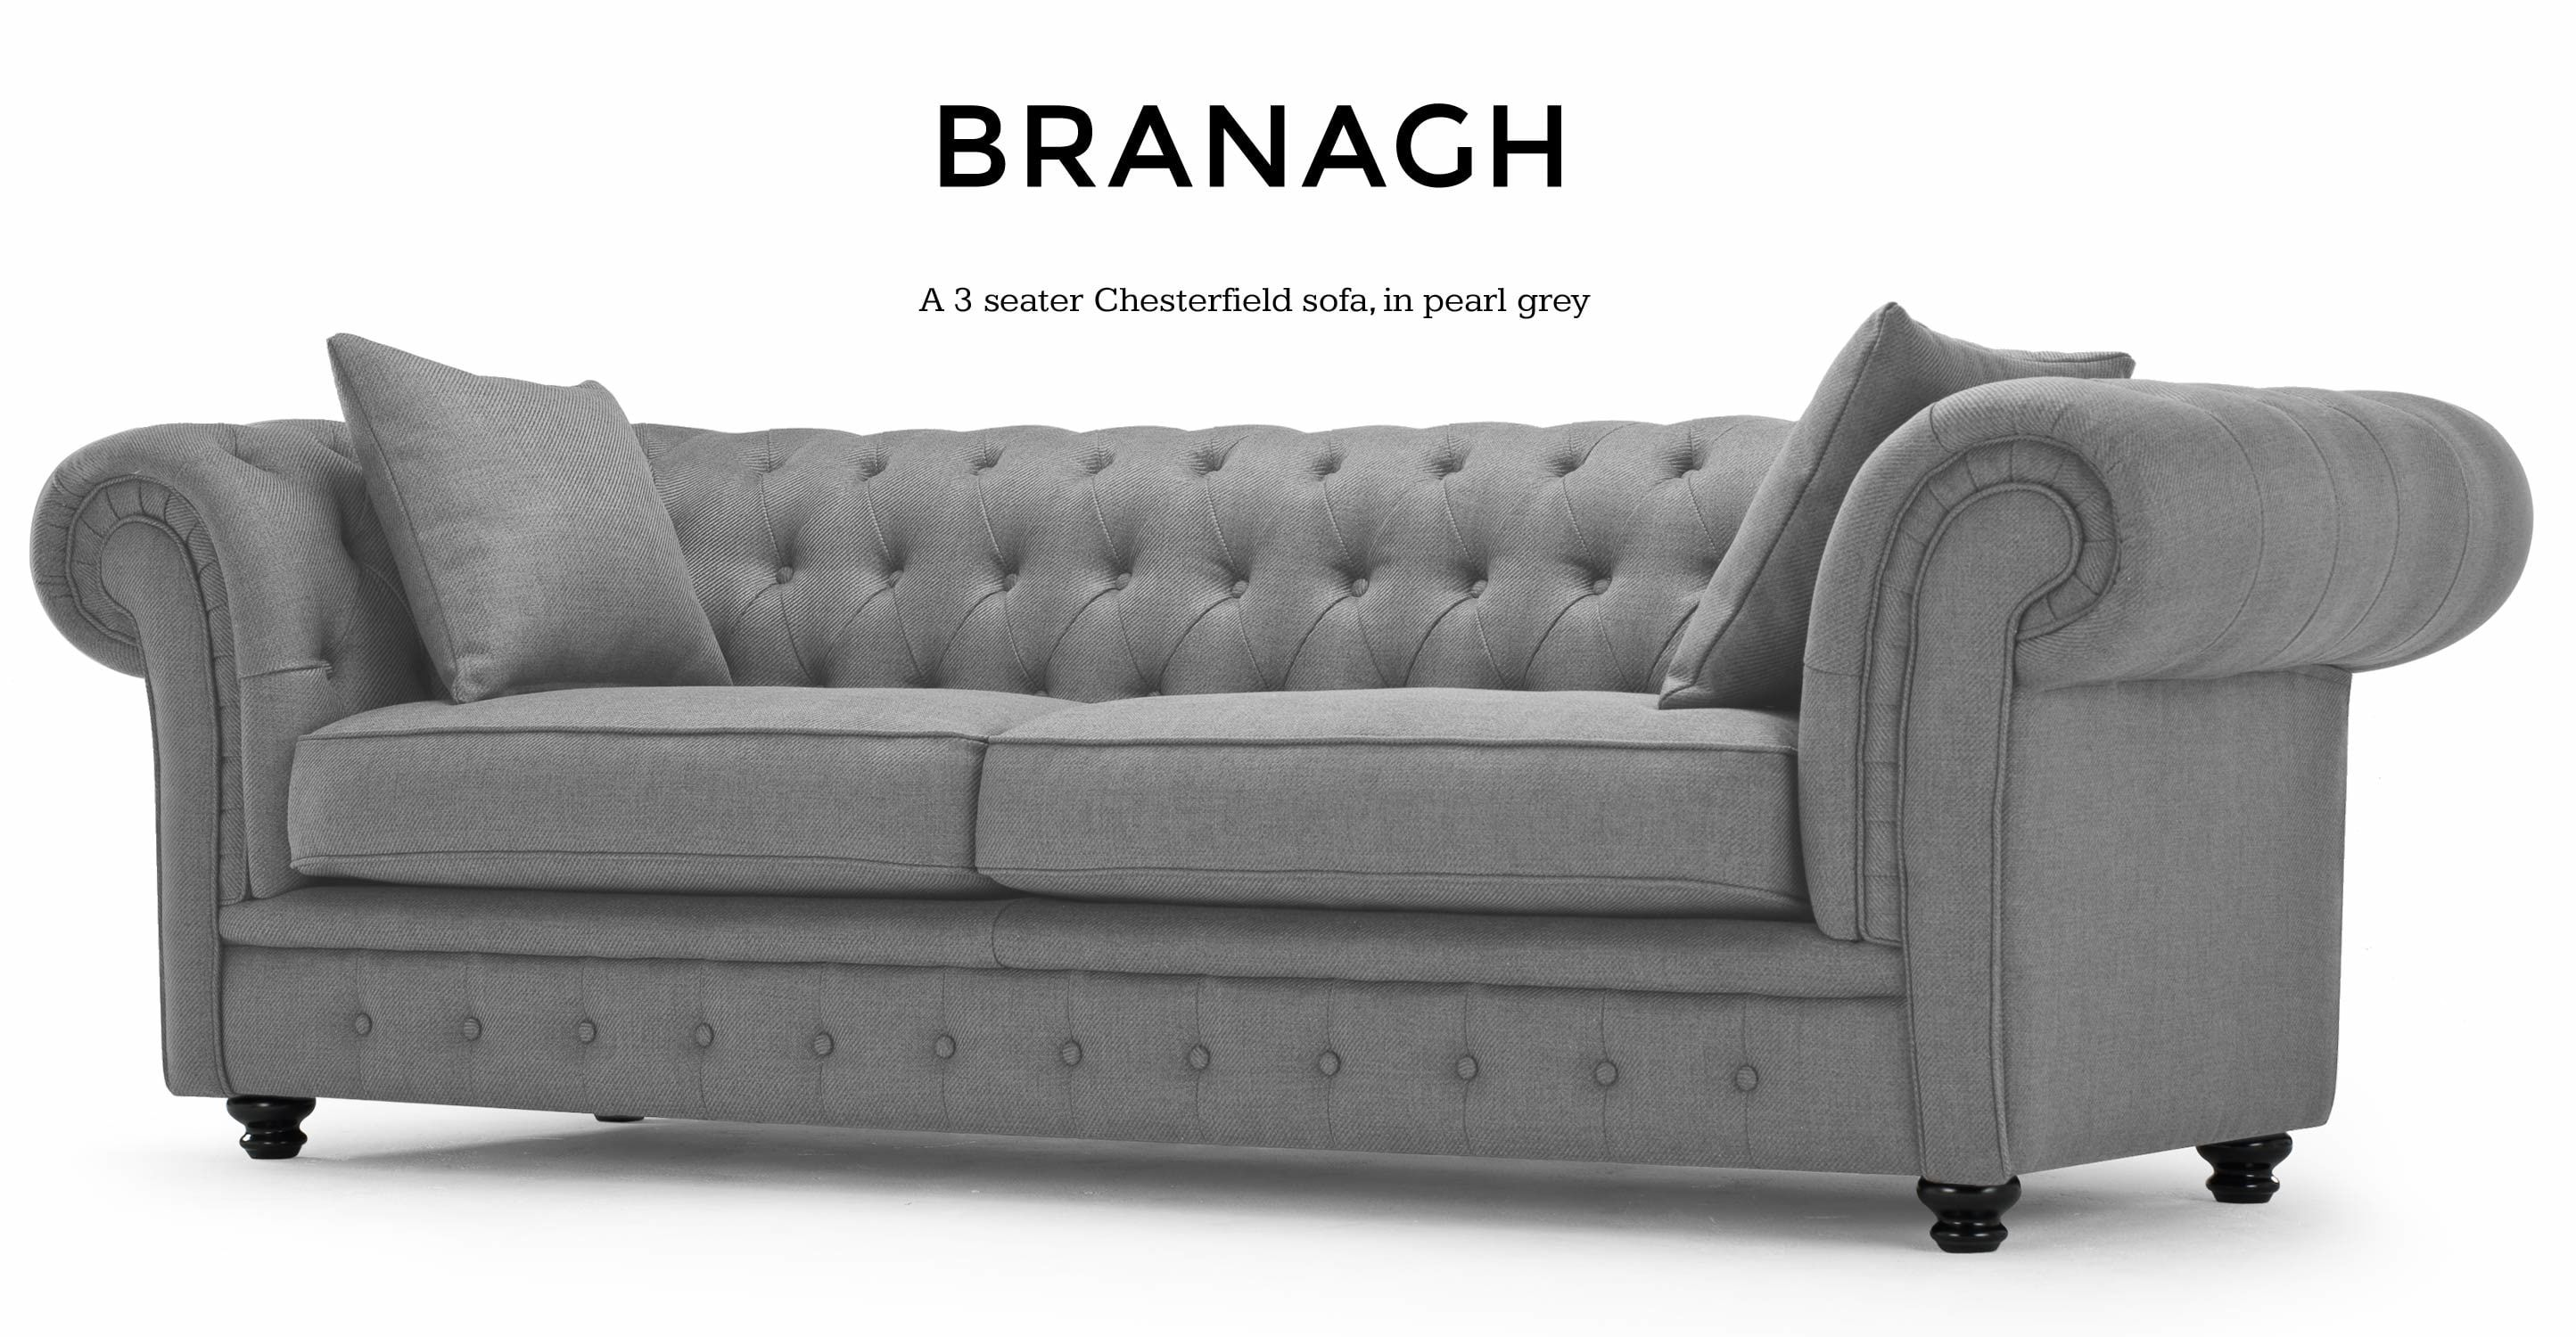 Branagh 3 Seater Chesterfield Sofa Pearl Grey from Made